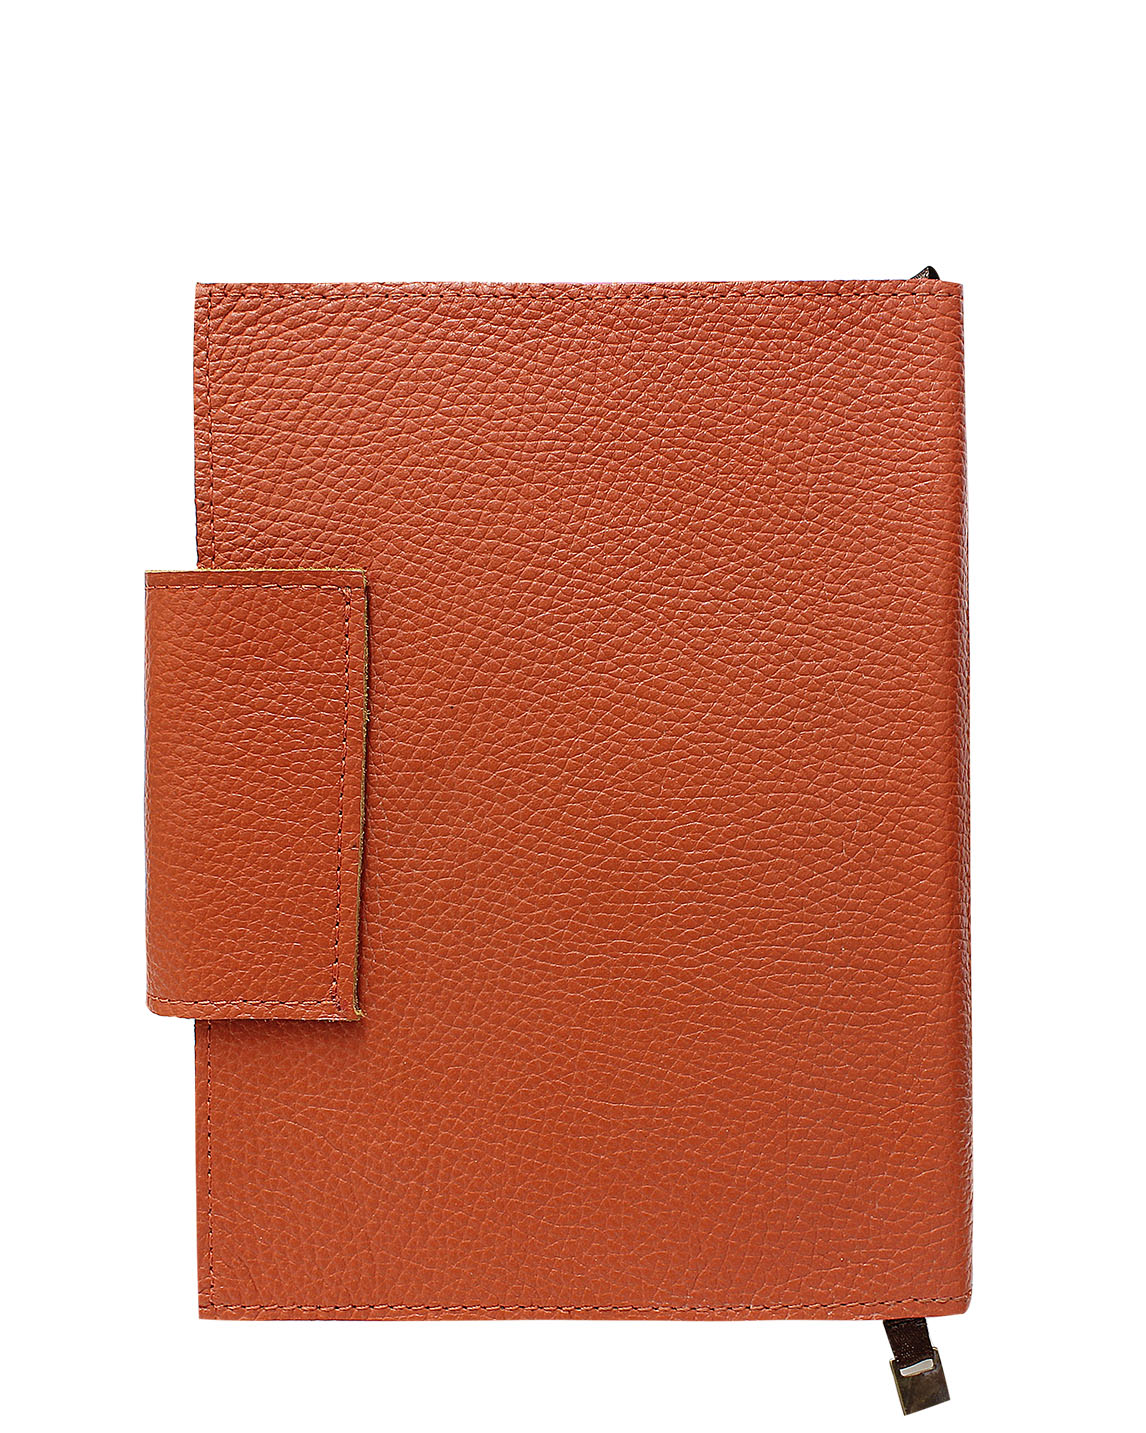 Agenda AG-0131 Color Naranja